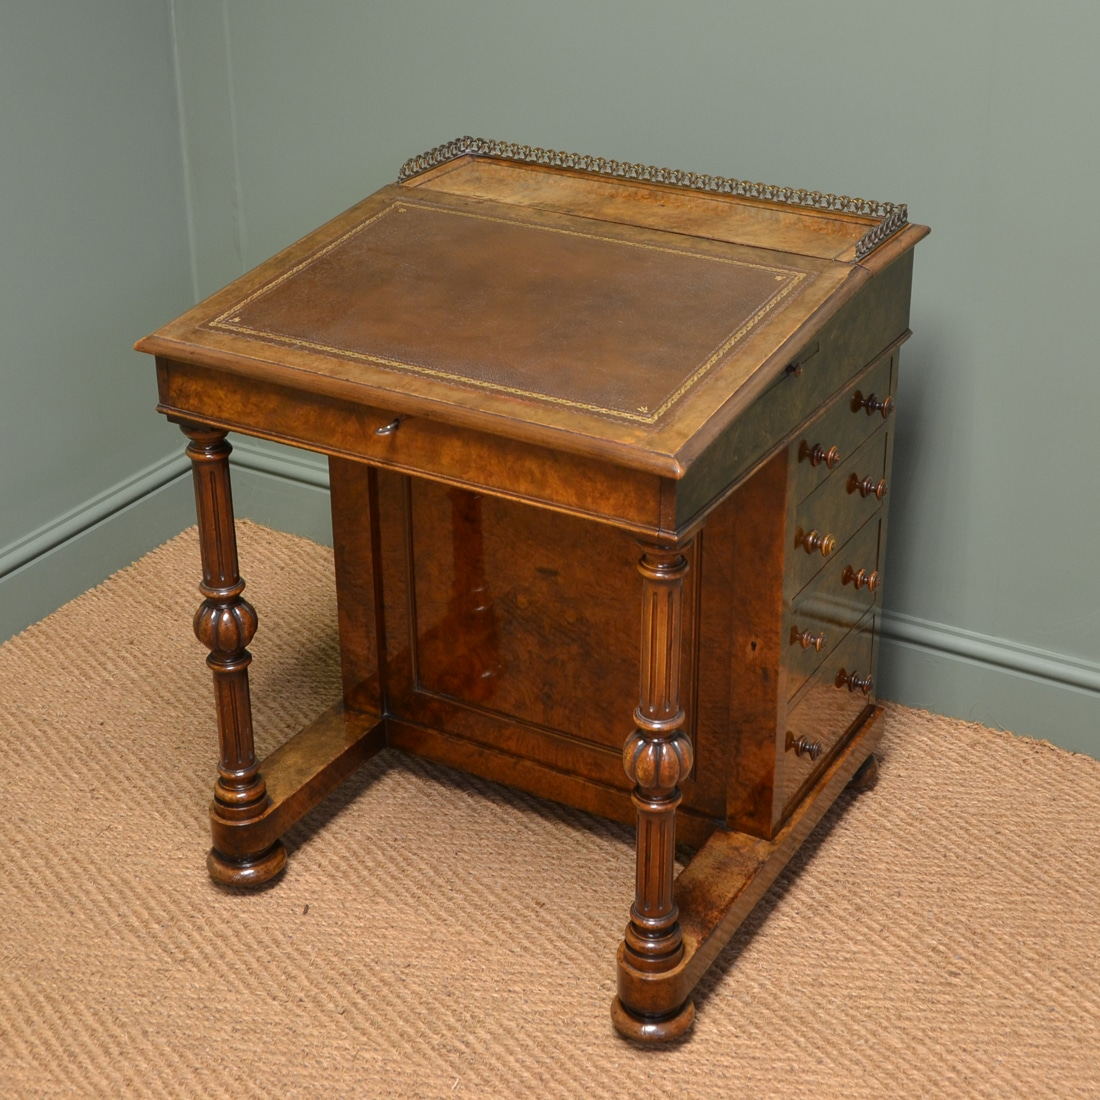 victorian writing desks Small late victorian early edwardian ebonised and burr wood veneered davenport / ladies writing desk 97cm h x 53cm w x 45cm d a solid little desk the leather on the writing slope is very worn and ther.